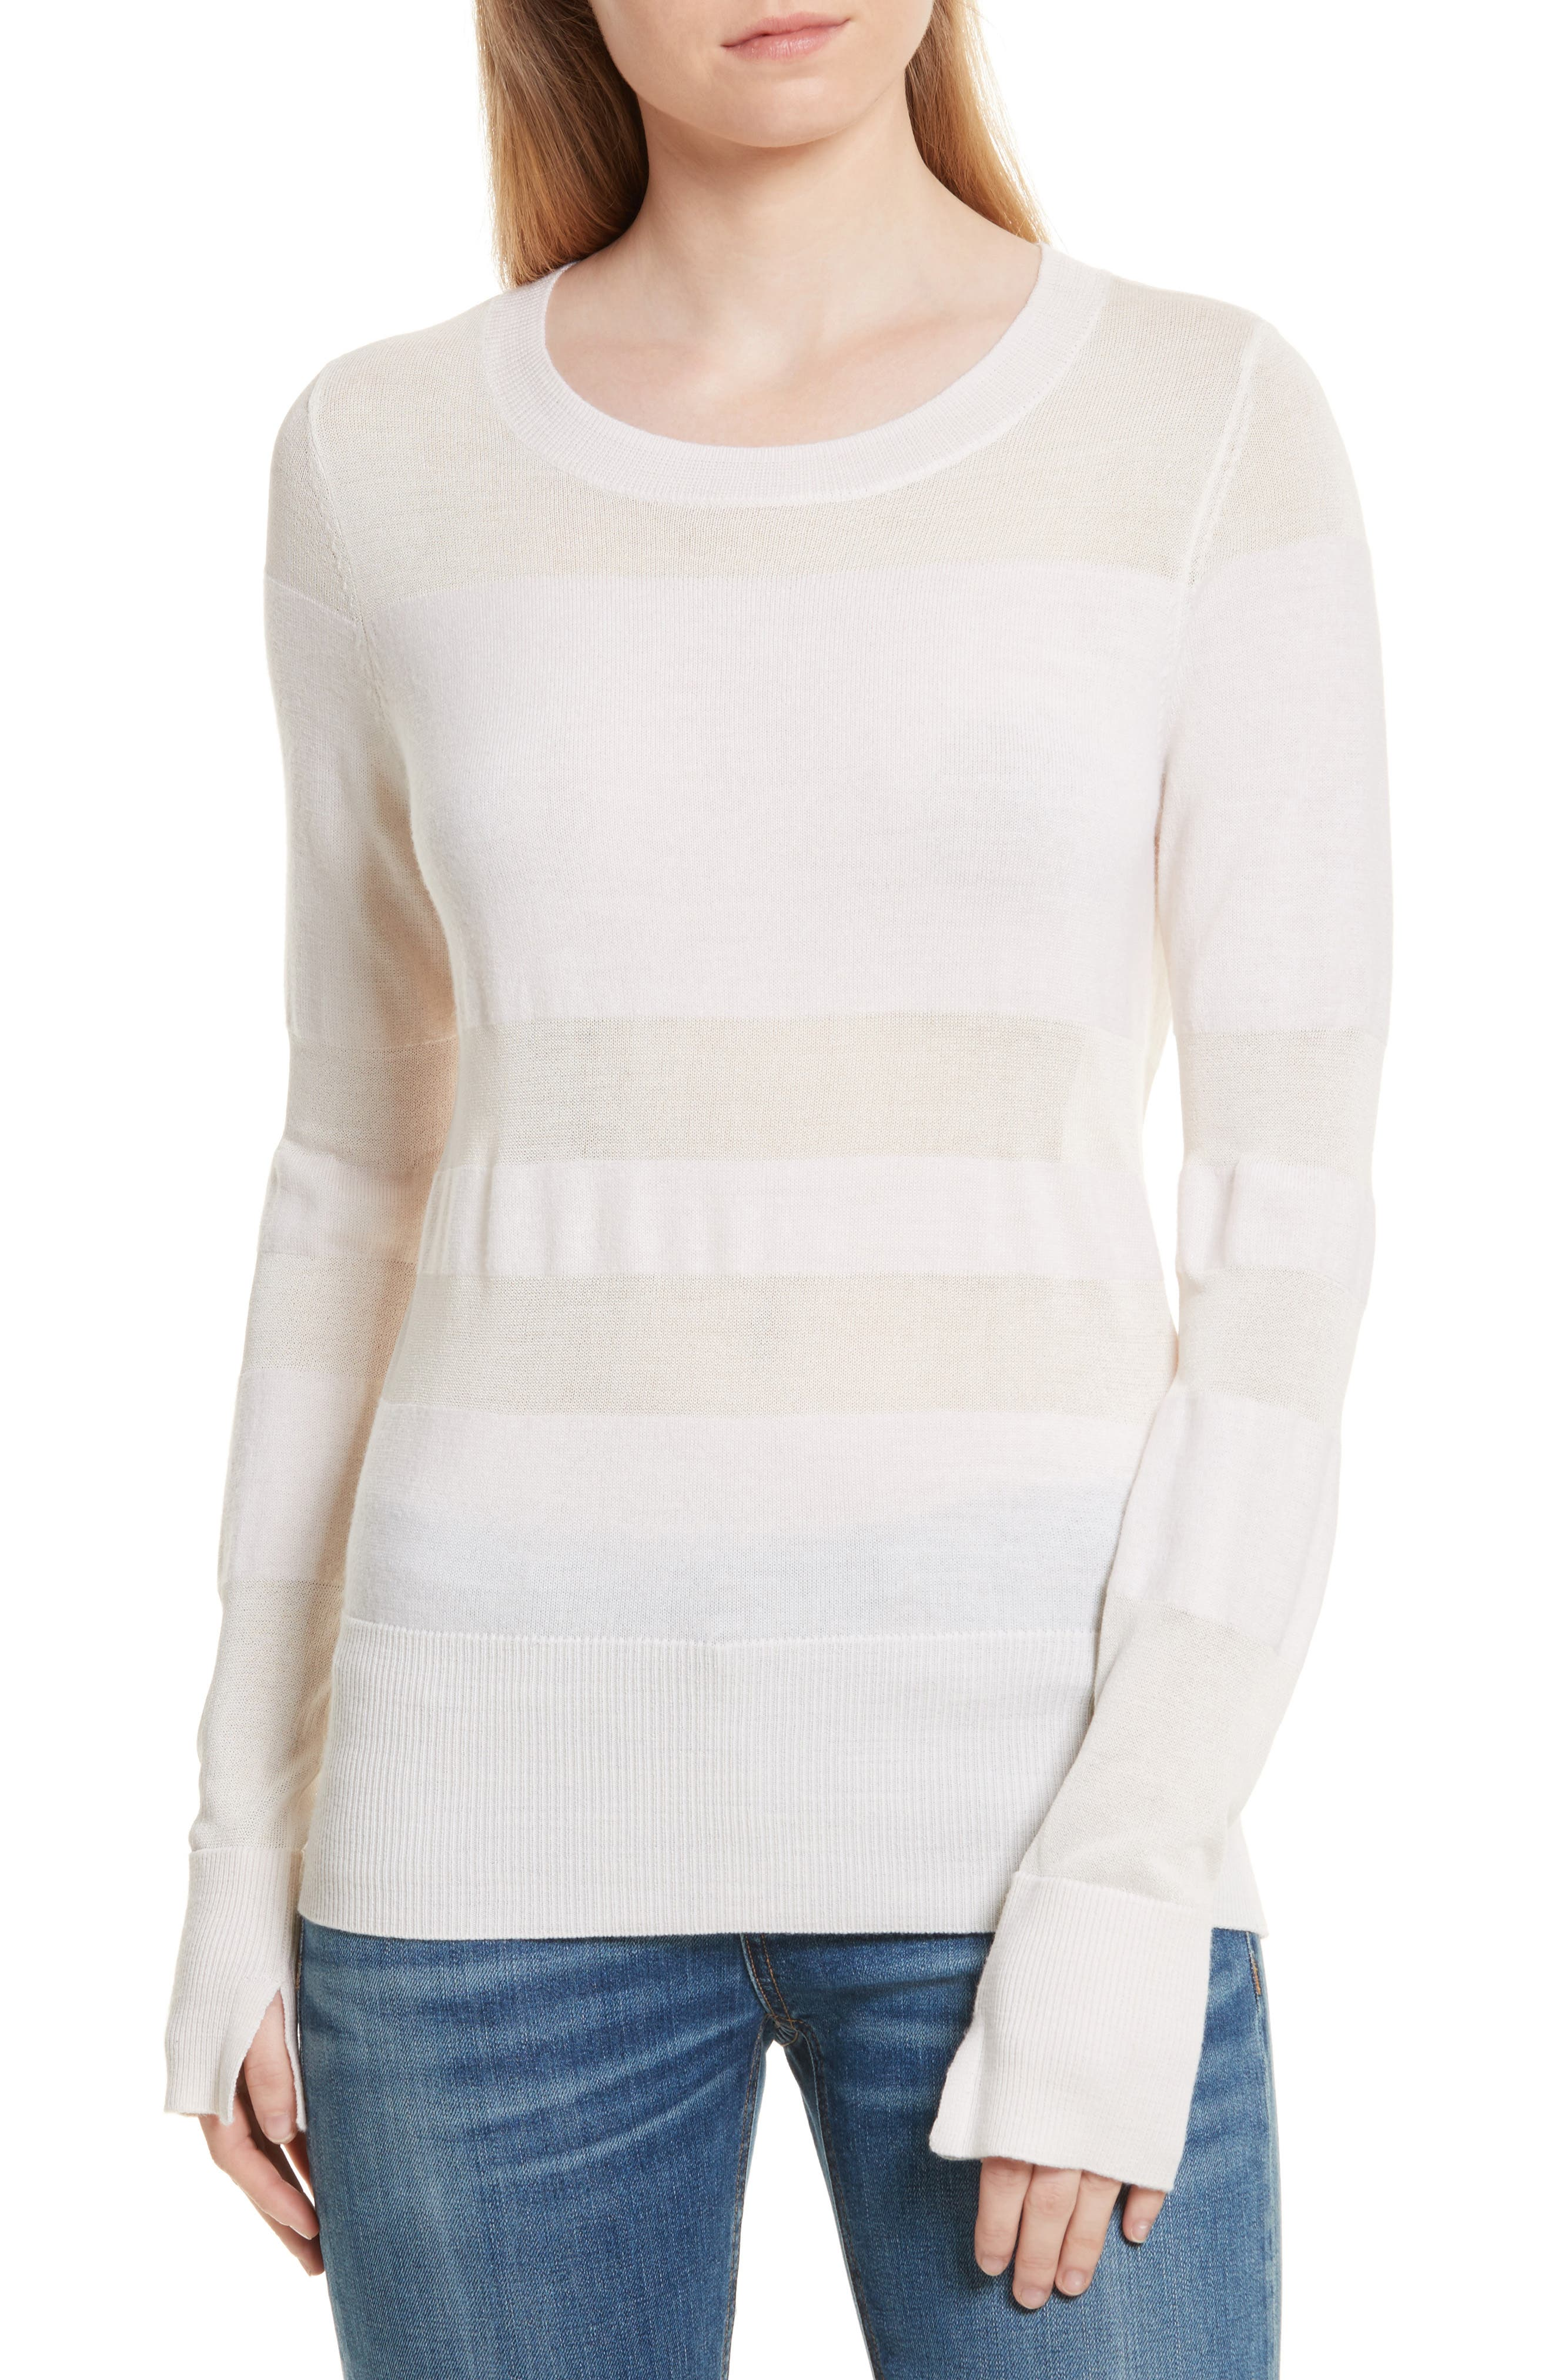 Alternate Image 1 Selected - rag & bone/JEAN Vivi Sweater